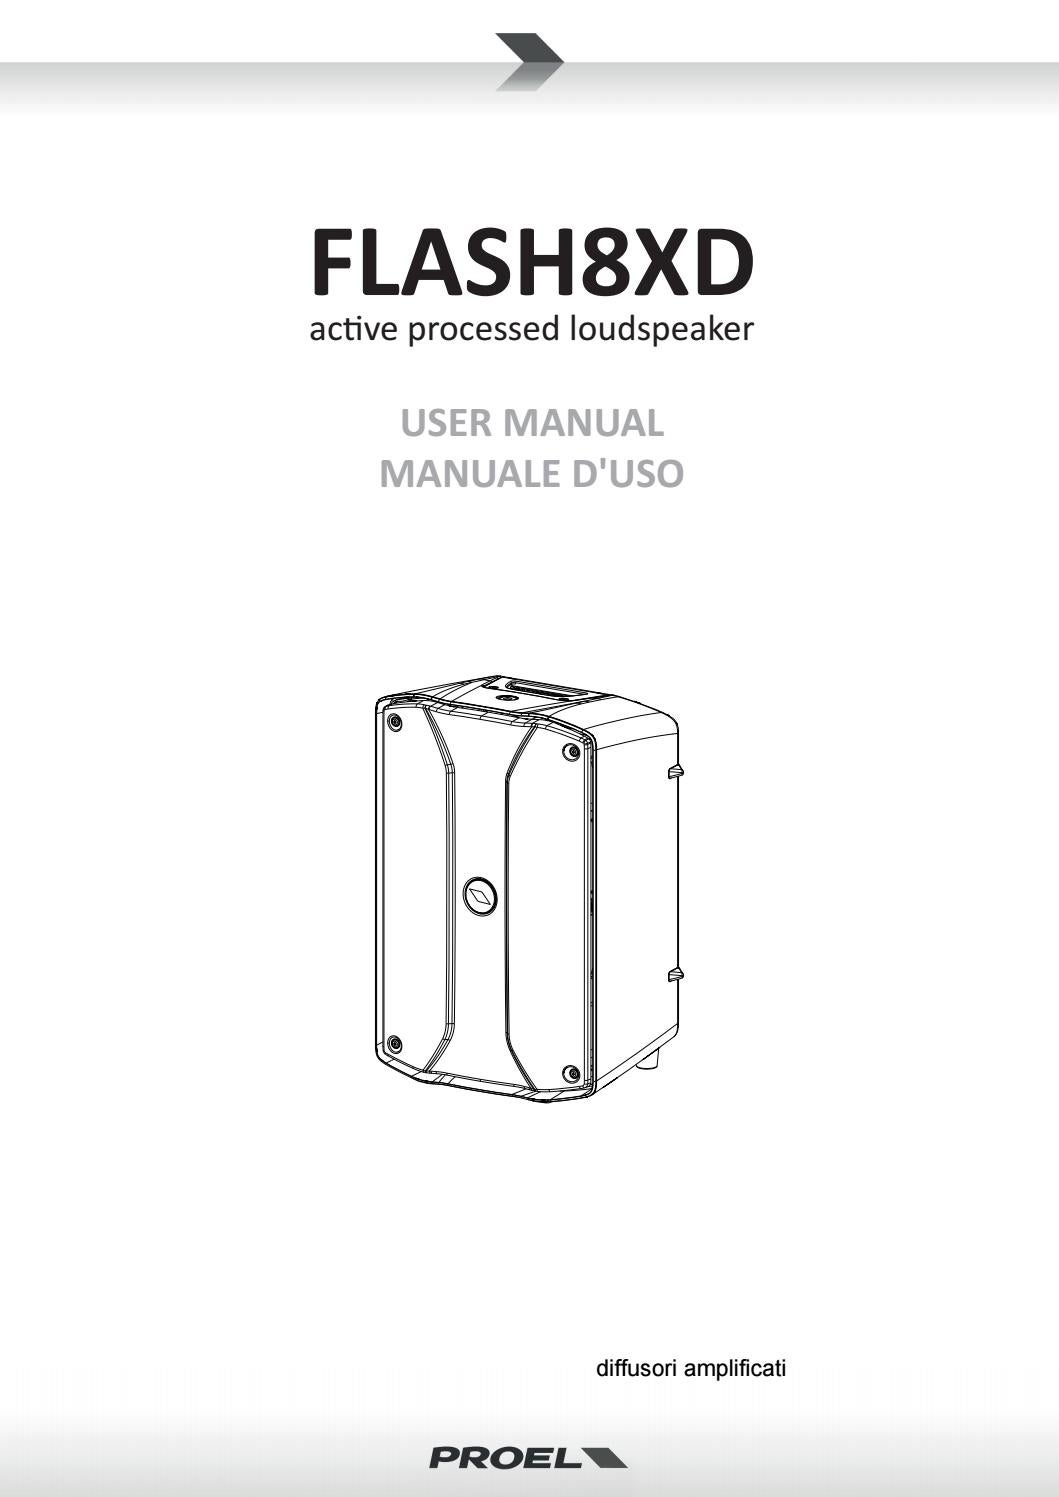 Manual flash8xd eng ita by Il Microfono audio-luci-store